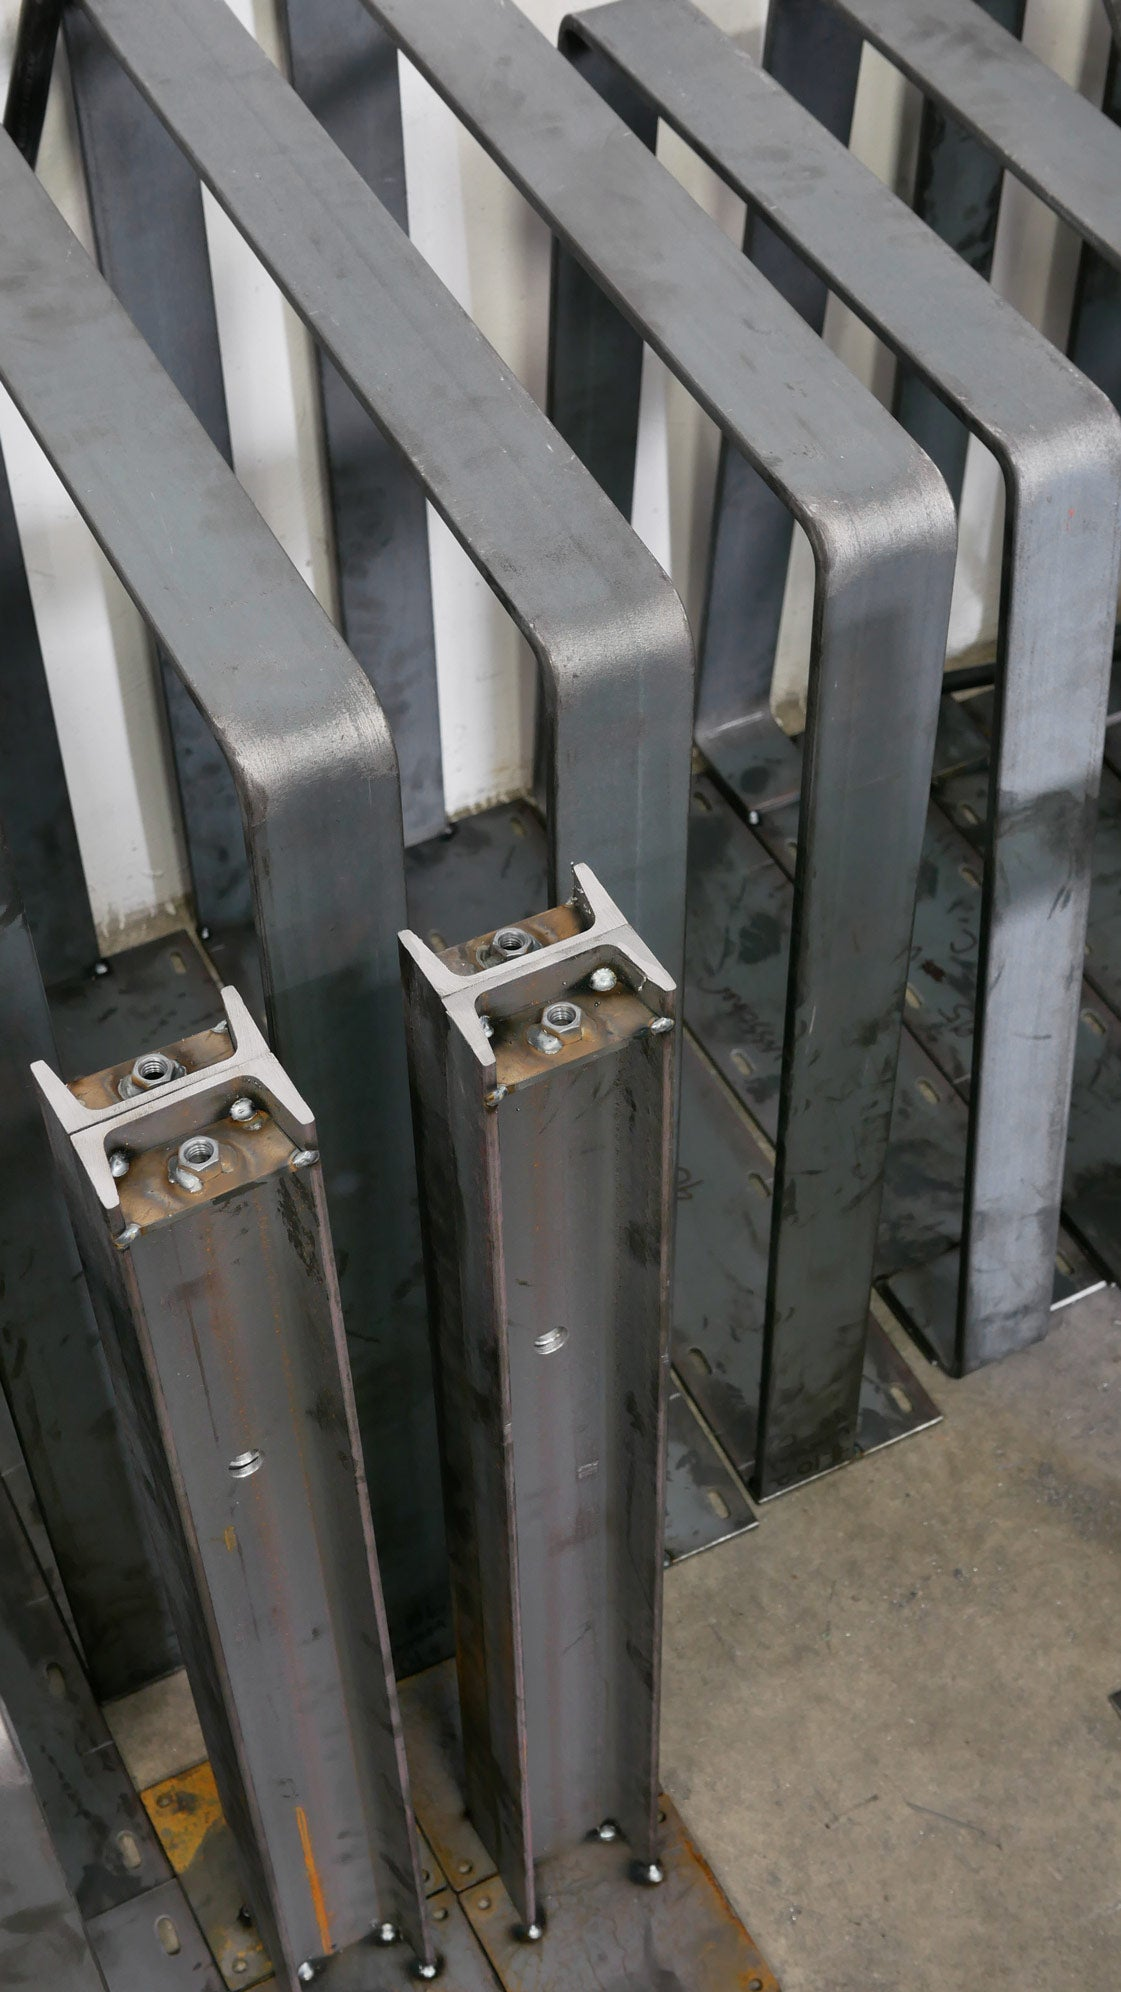 Unfinished metal table legs. Channel steel and flat bar steel shown here